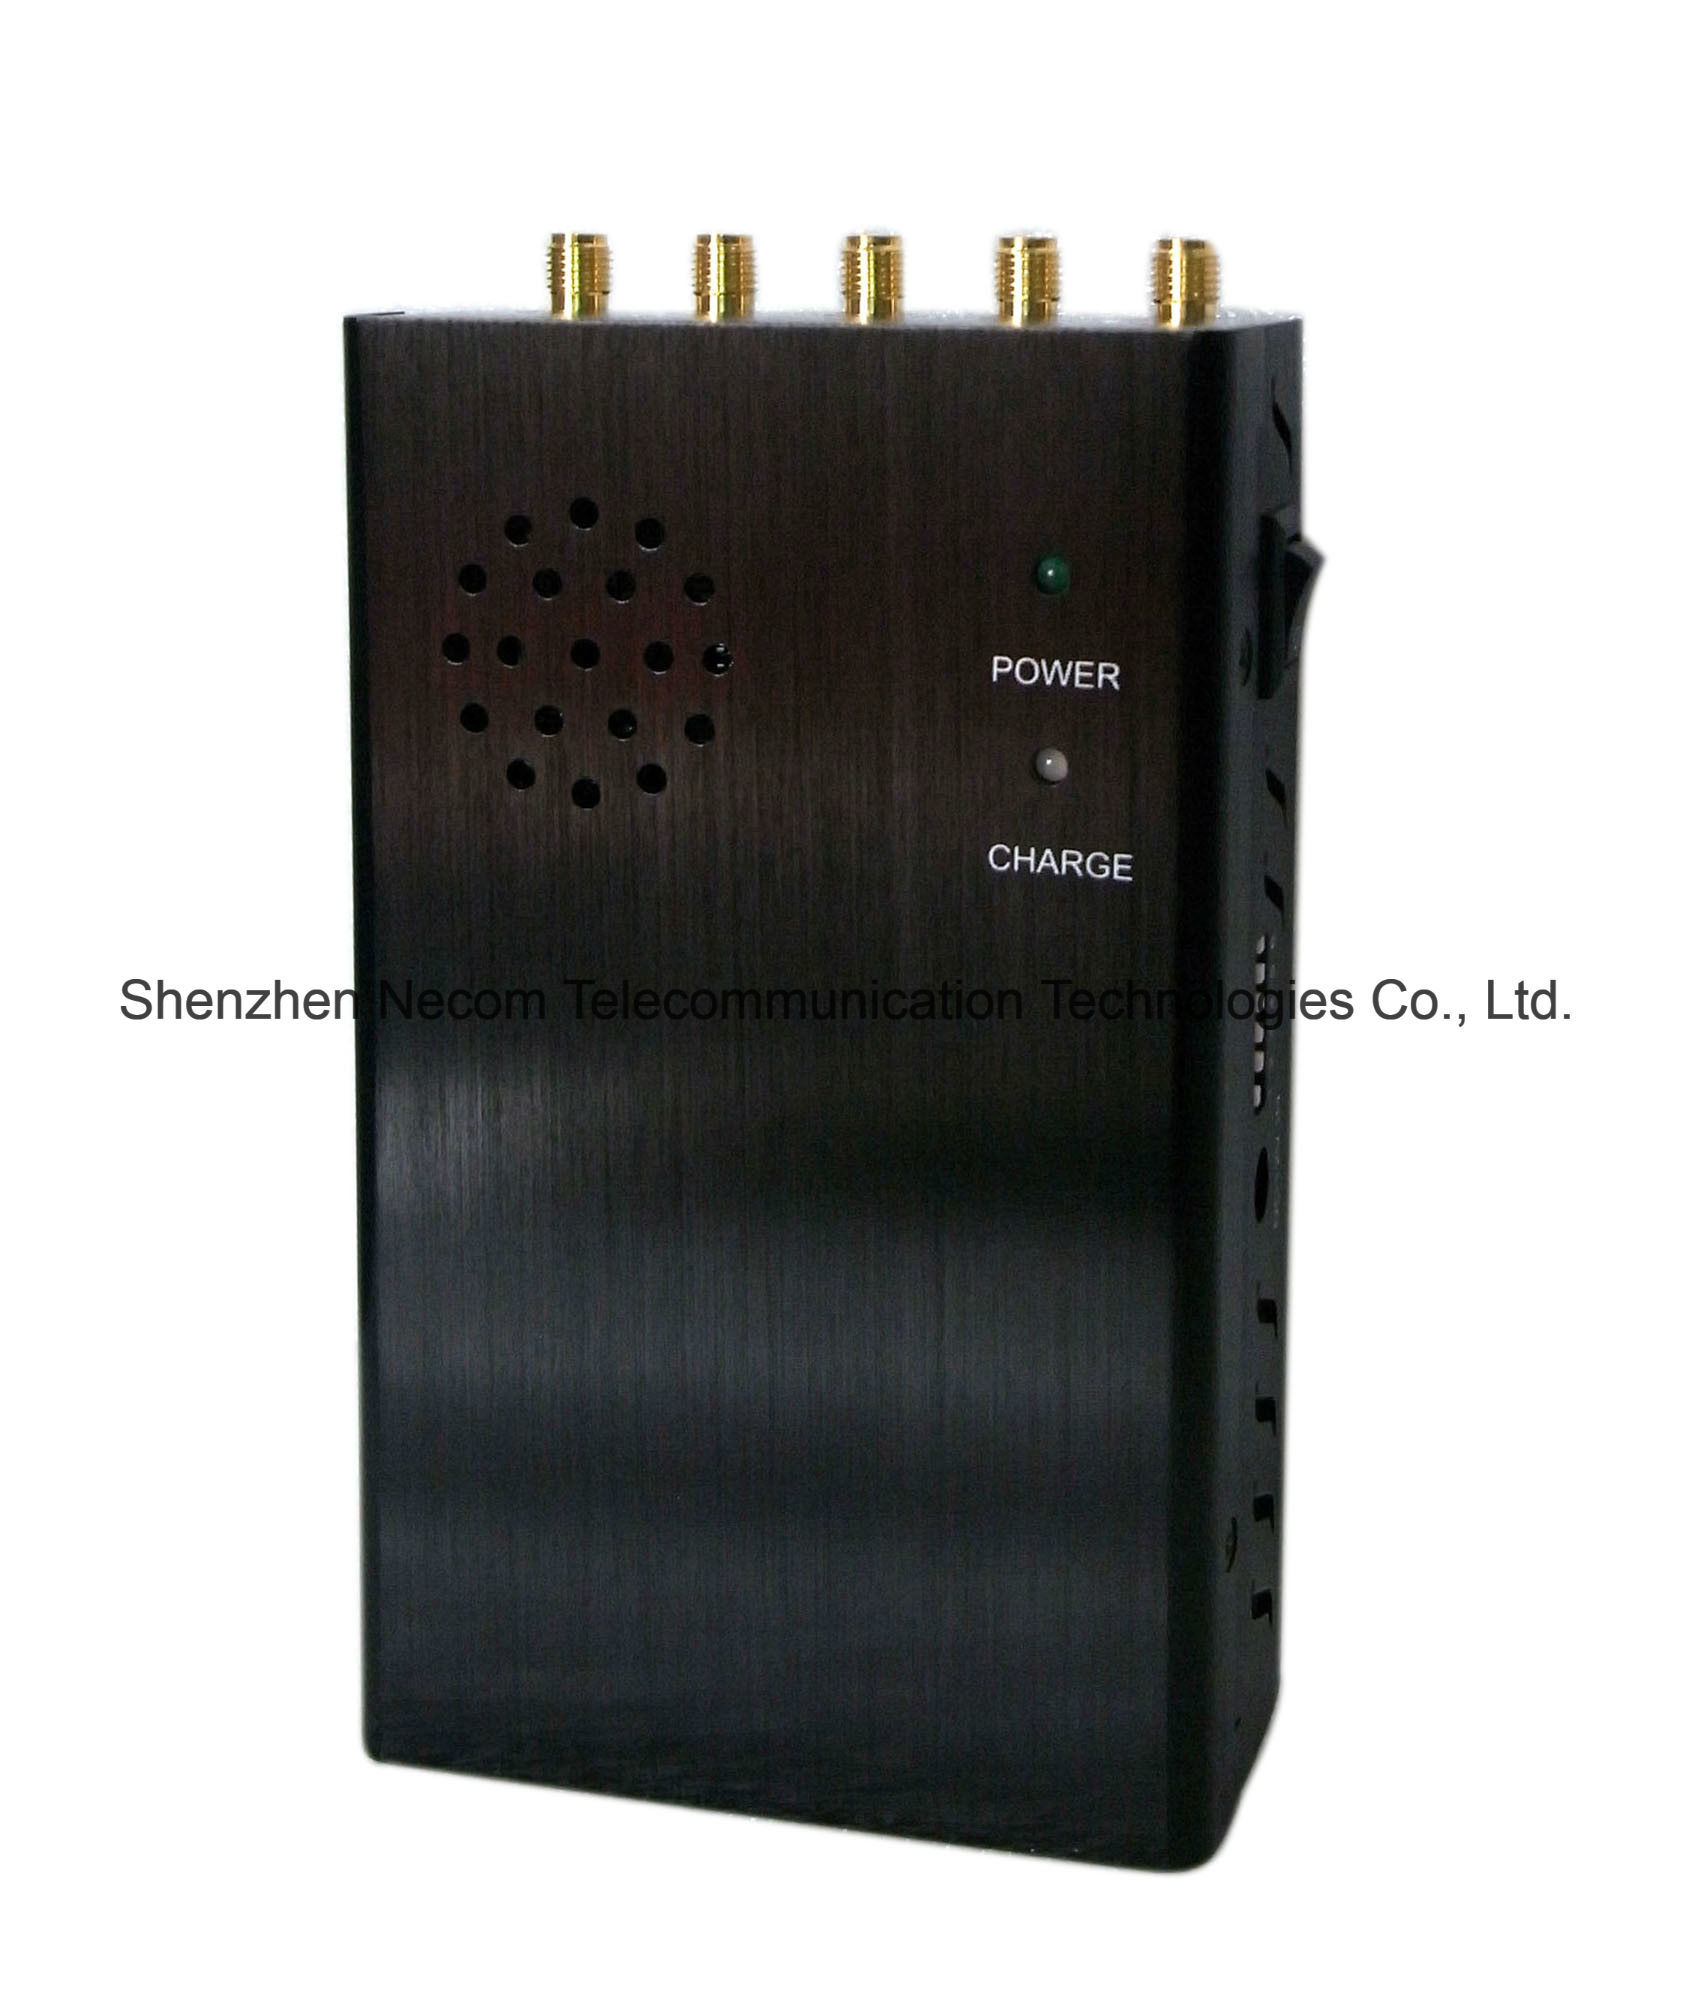 phone jammer thailand exchange - China Handheld, Portable, Mini, Mobile (built-in battery) GPS Signal Blokcer Signal Jammer,Handheld Cellphone Signal Jammer, Signal Blocker/ Shield,315/433MHz Jammer - China 5 Band Signal Blockers, Five Antennas Jammers